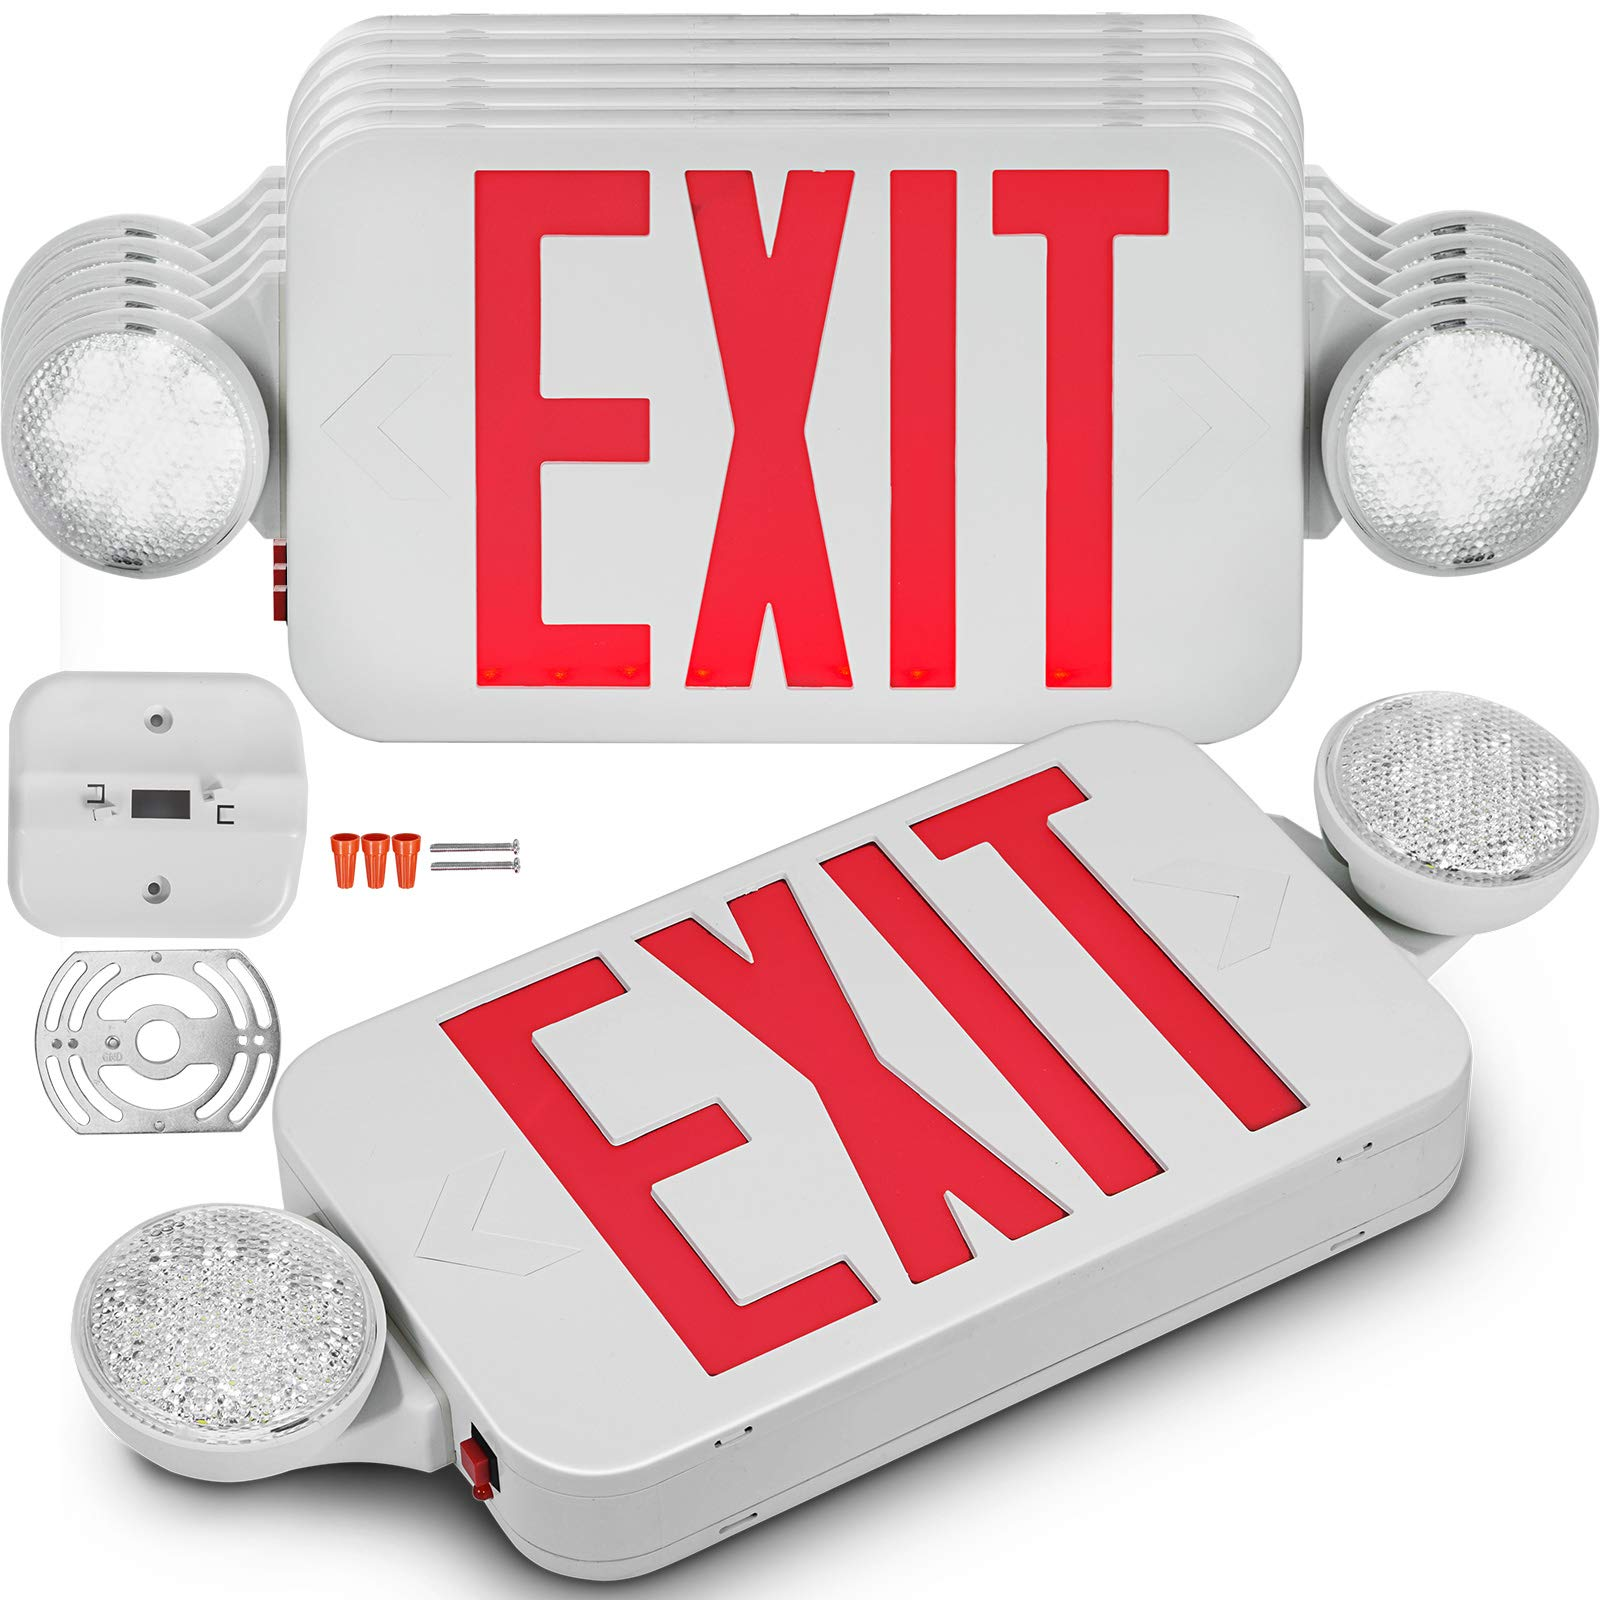 Happybuy 6 Pack Emergency Lights Red EXIT Sign with Dual LED Lamp Heads ABS Fire Resistance Exit Light with Emergency Light Photoluminescent Exit Sign Emergency Exit Light Led Exit Alarm